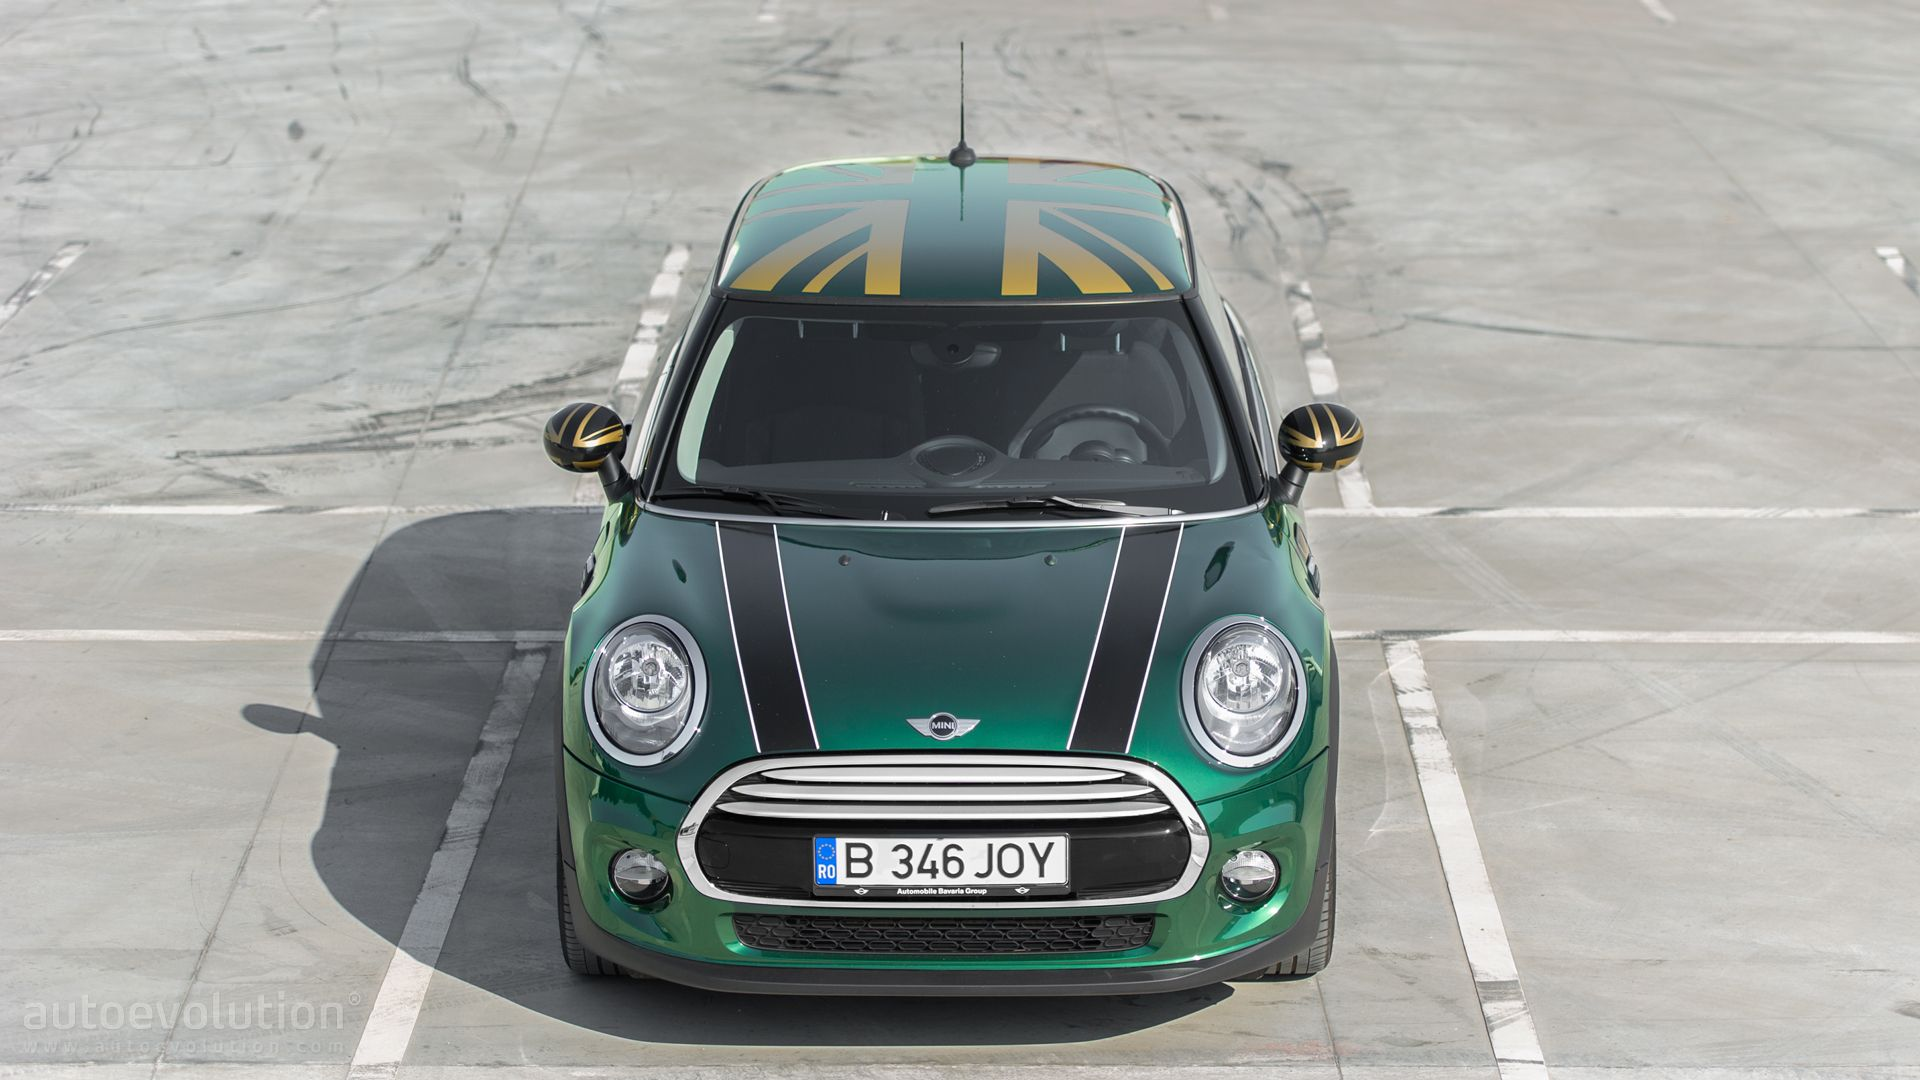 2015 mini cooper hd wallpapers british racing green goes. Black Bedroom Furniture Sets. Home Design Ideas